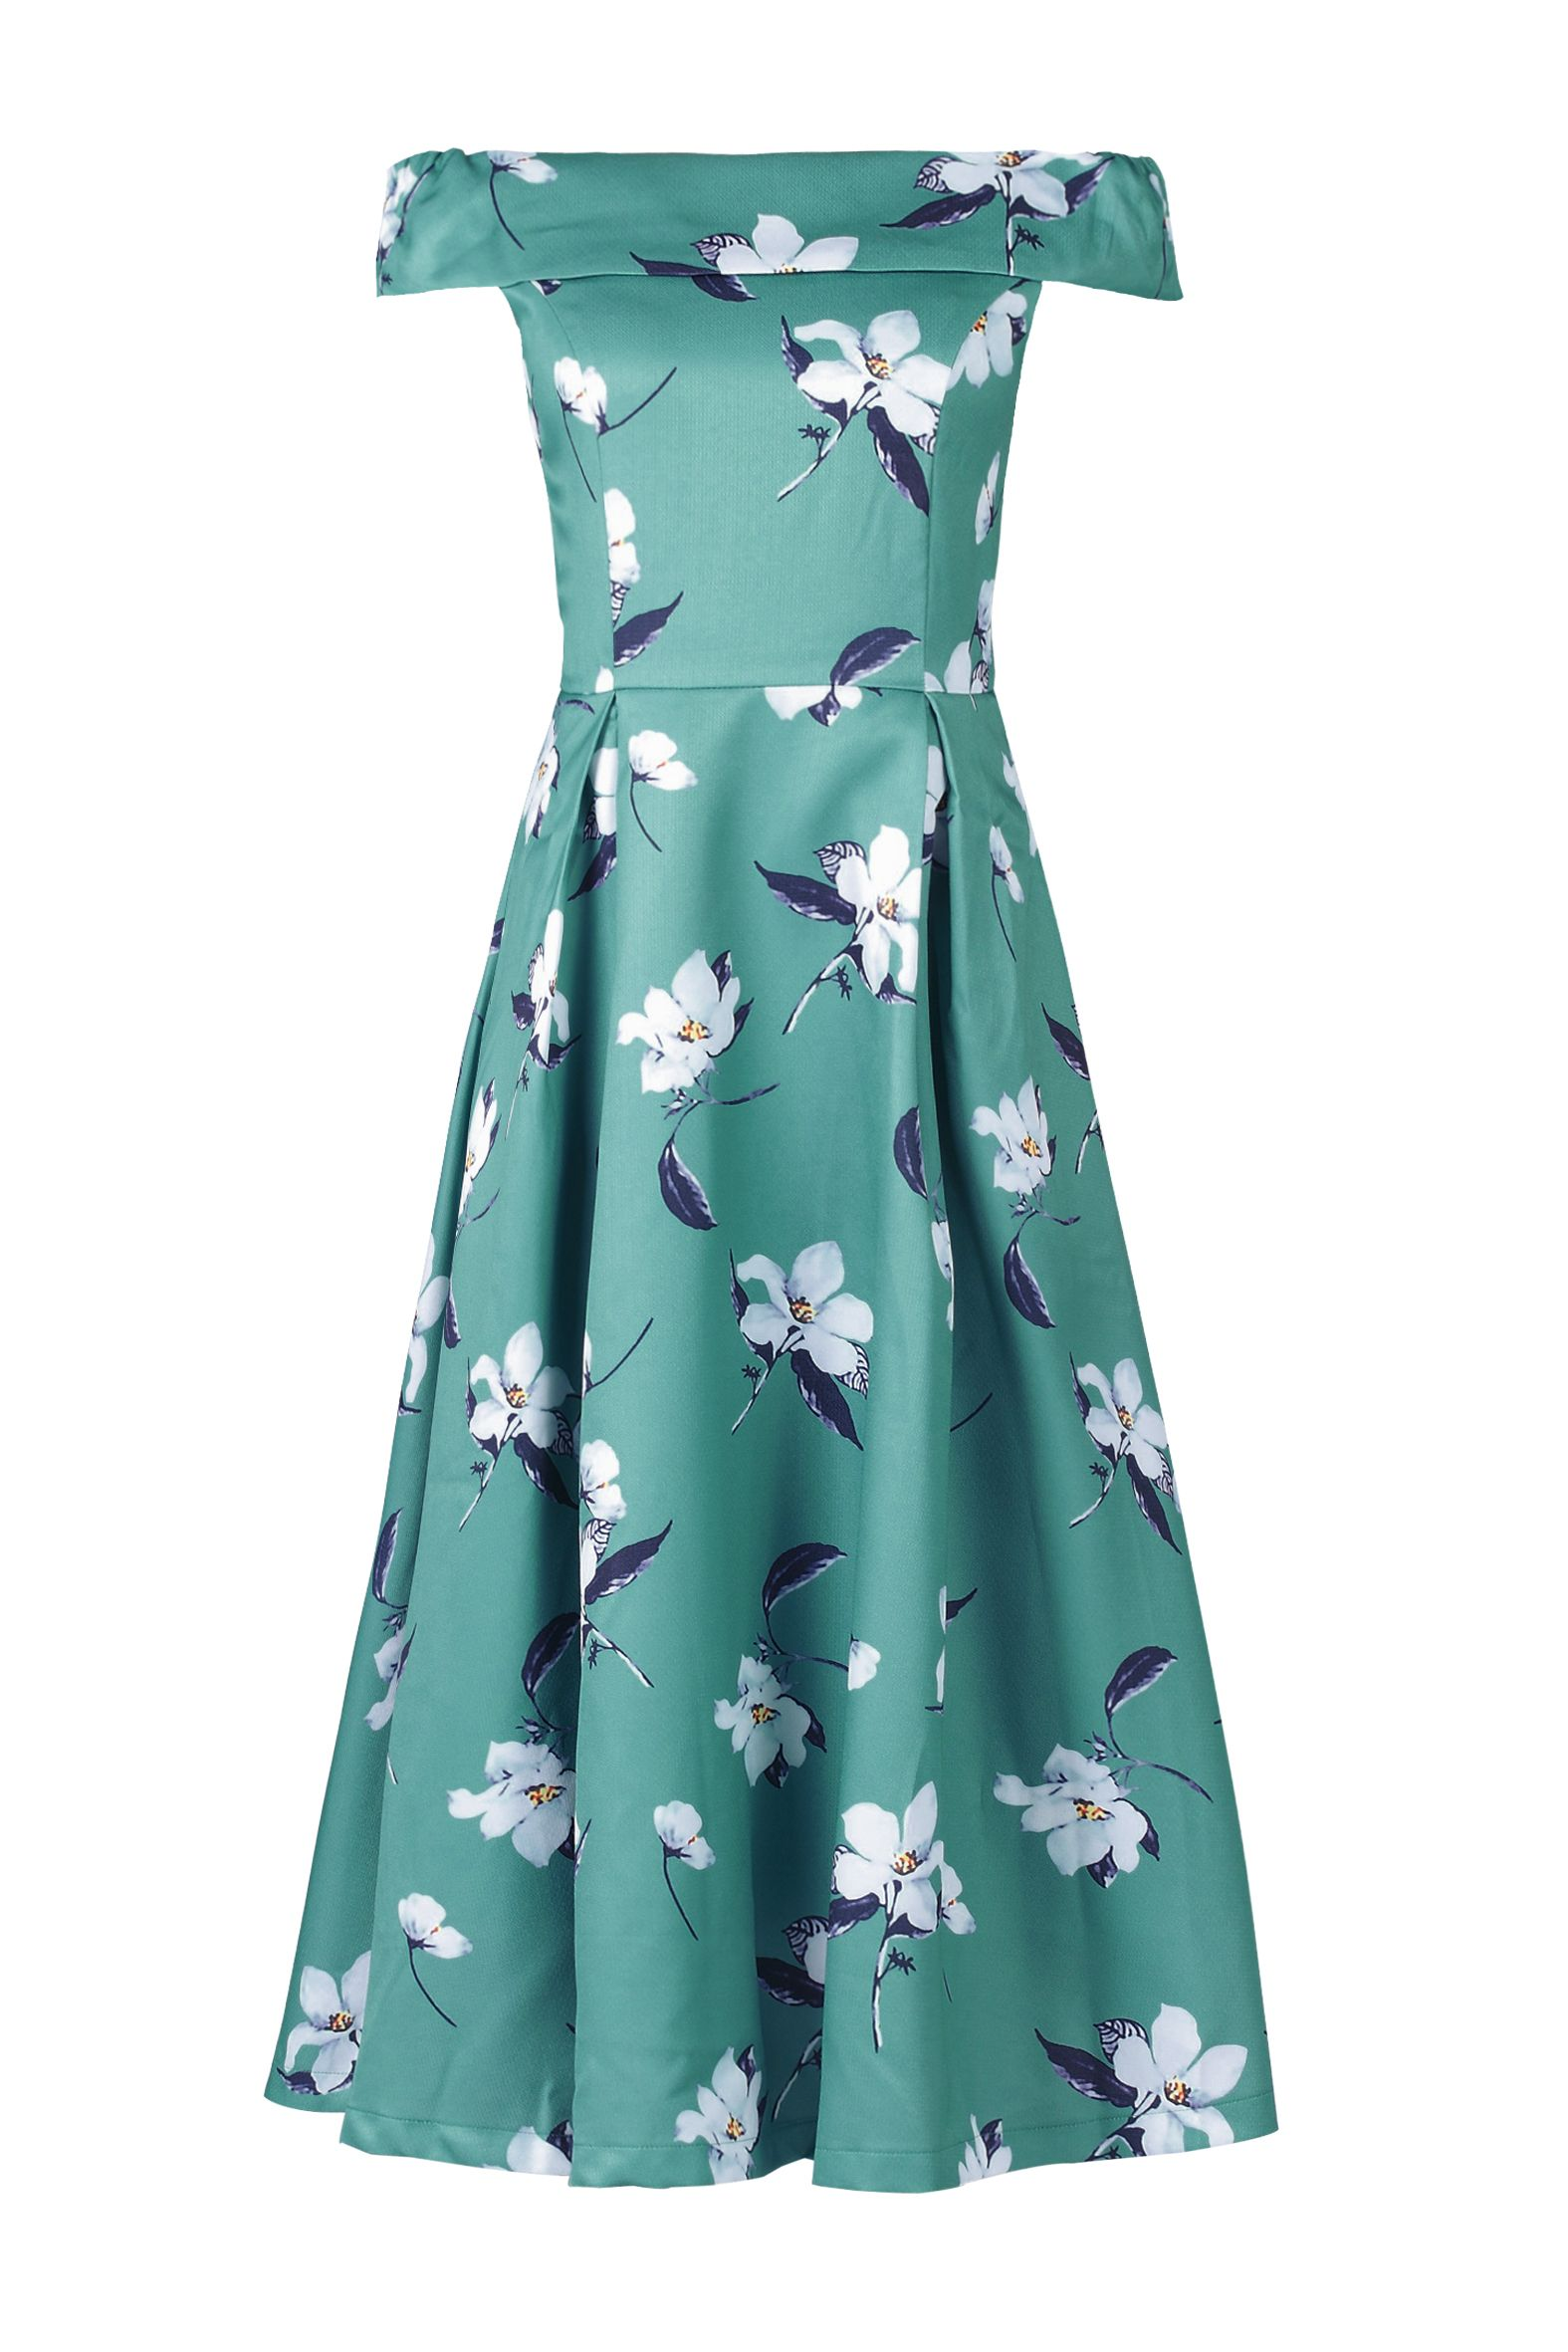 Jolie Moi Floral Print Midi Prom Dress, Green